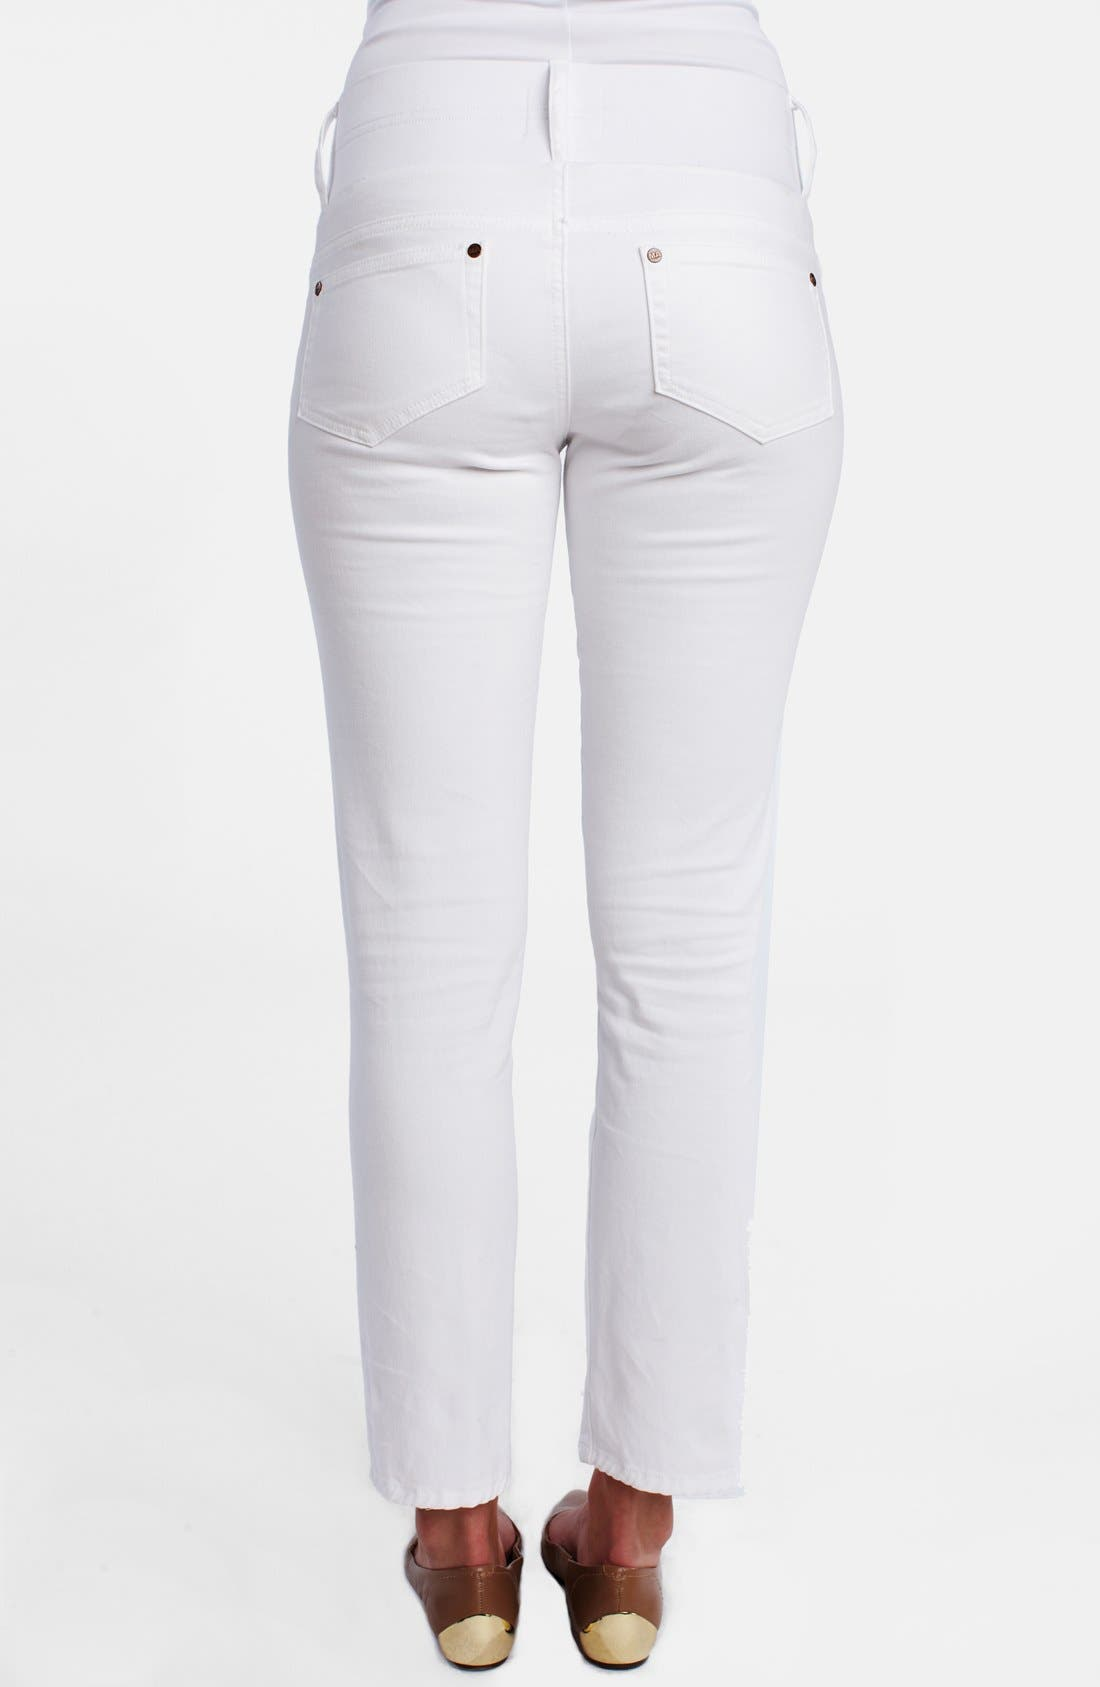 Maternity Skinny Ankle Stretch Jeans,                             Alternate thumbnail 6, color,                             100